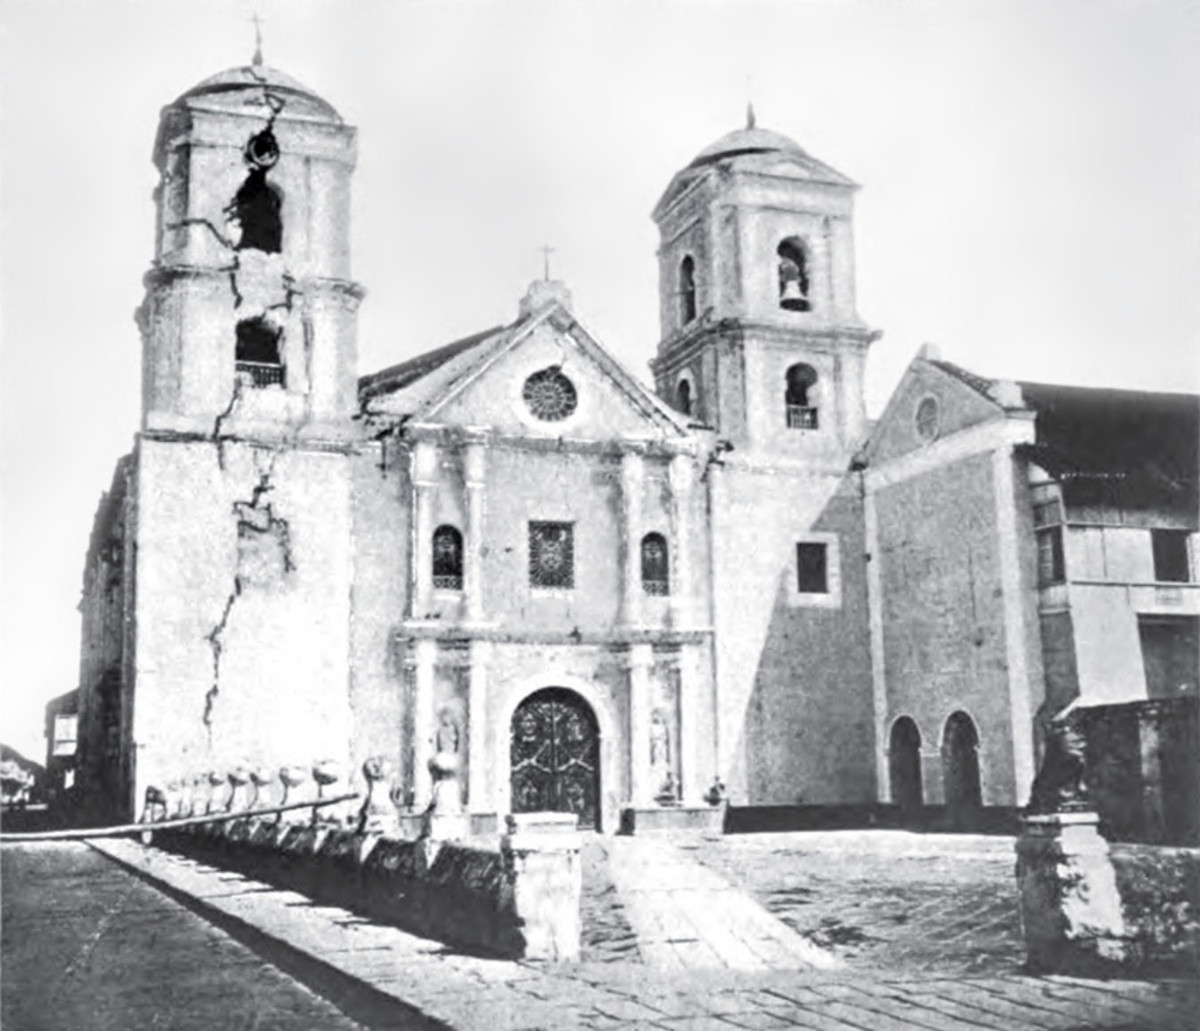 San Agustin Church after the destructive 1880 Luzon earthquake, note the large crack on the east bell tower (Photo credit: Wikimedia Commons)